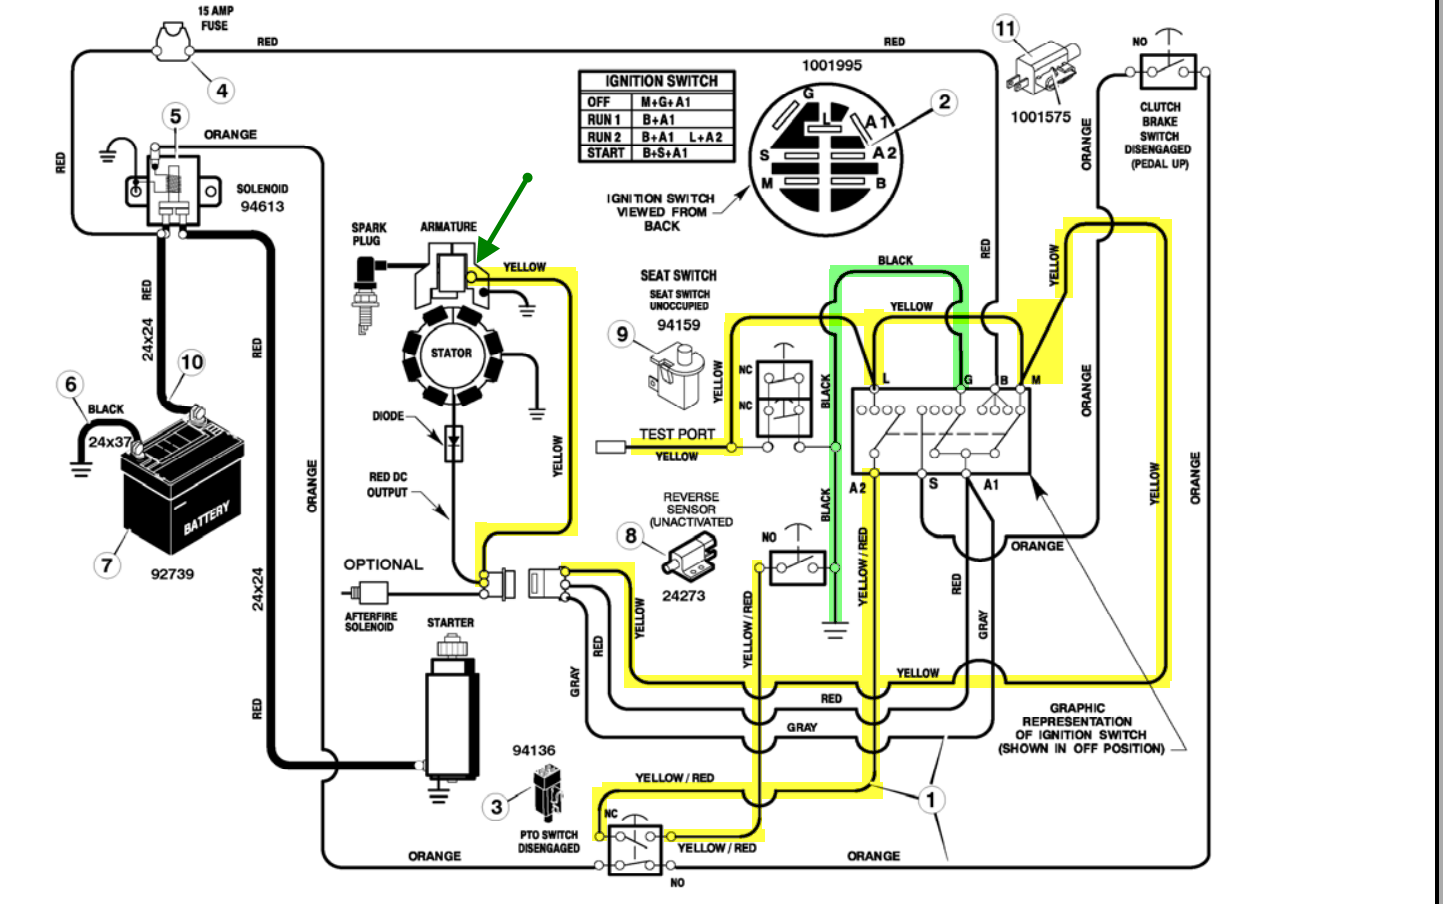 Amf Golf Cart Wiring Diagram 19 Hp Briggs And Stratton Wiring Diagram Diagrams